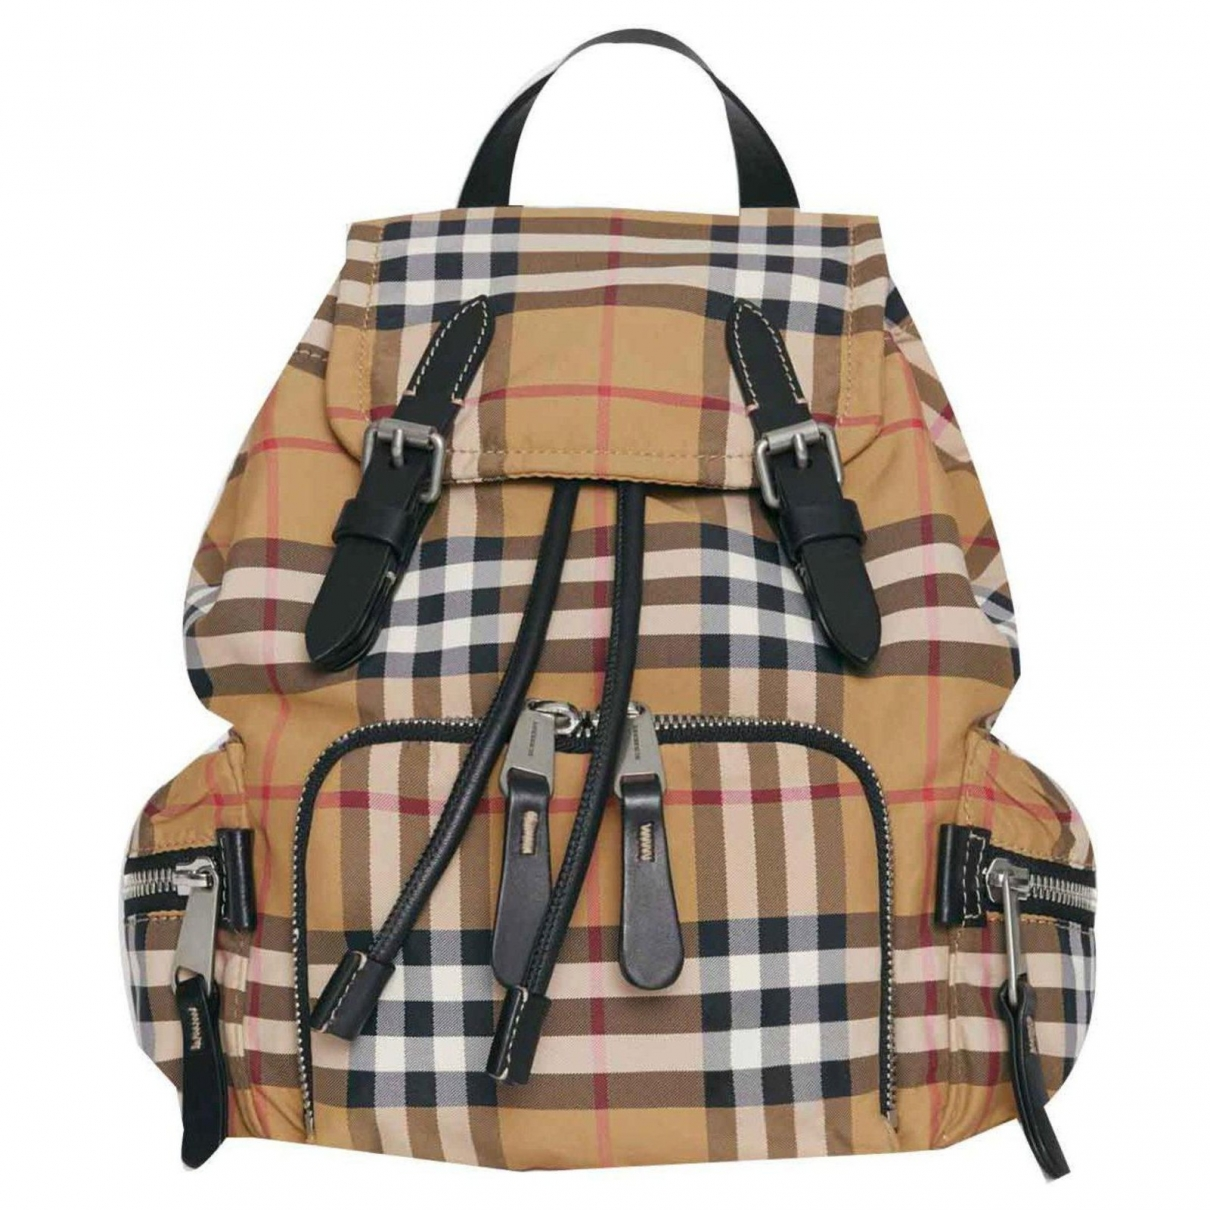 Burberry - Sac a dos The Rucksack pour femme - multicolore